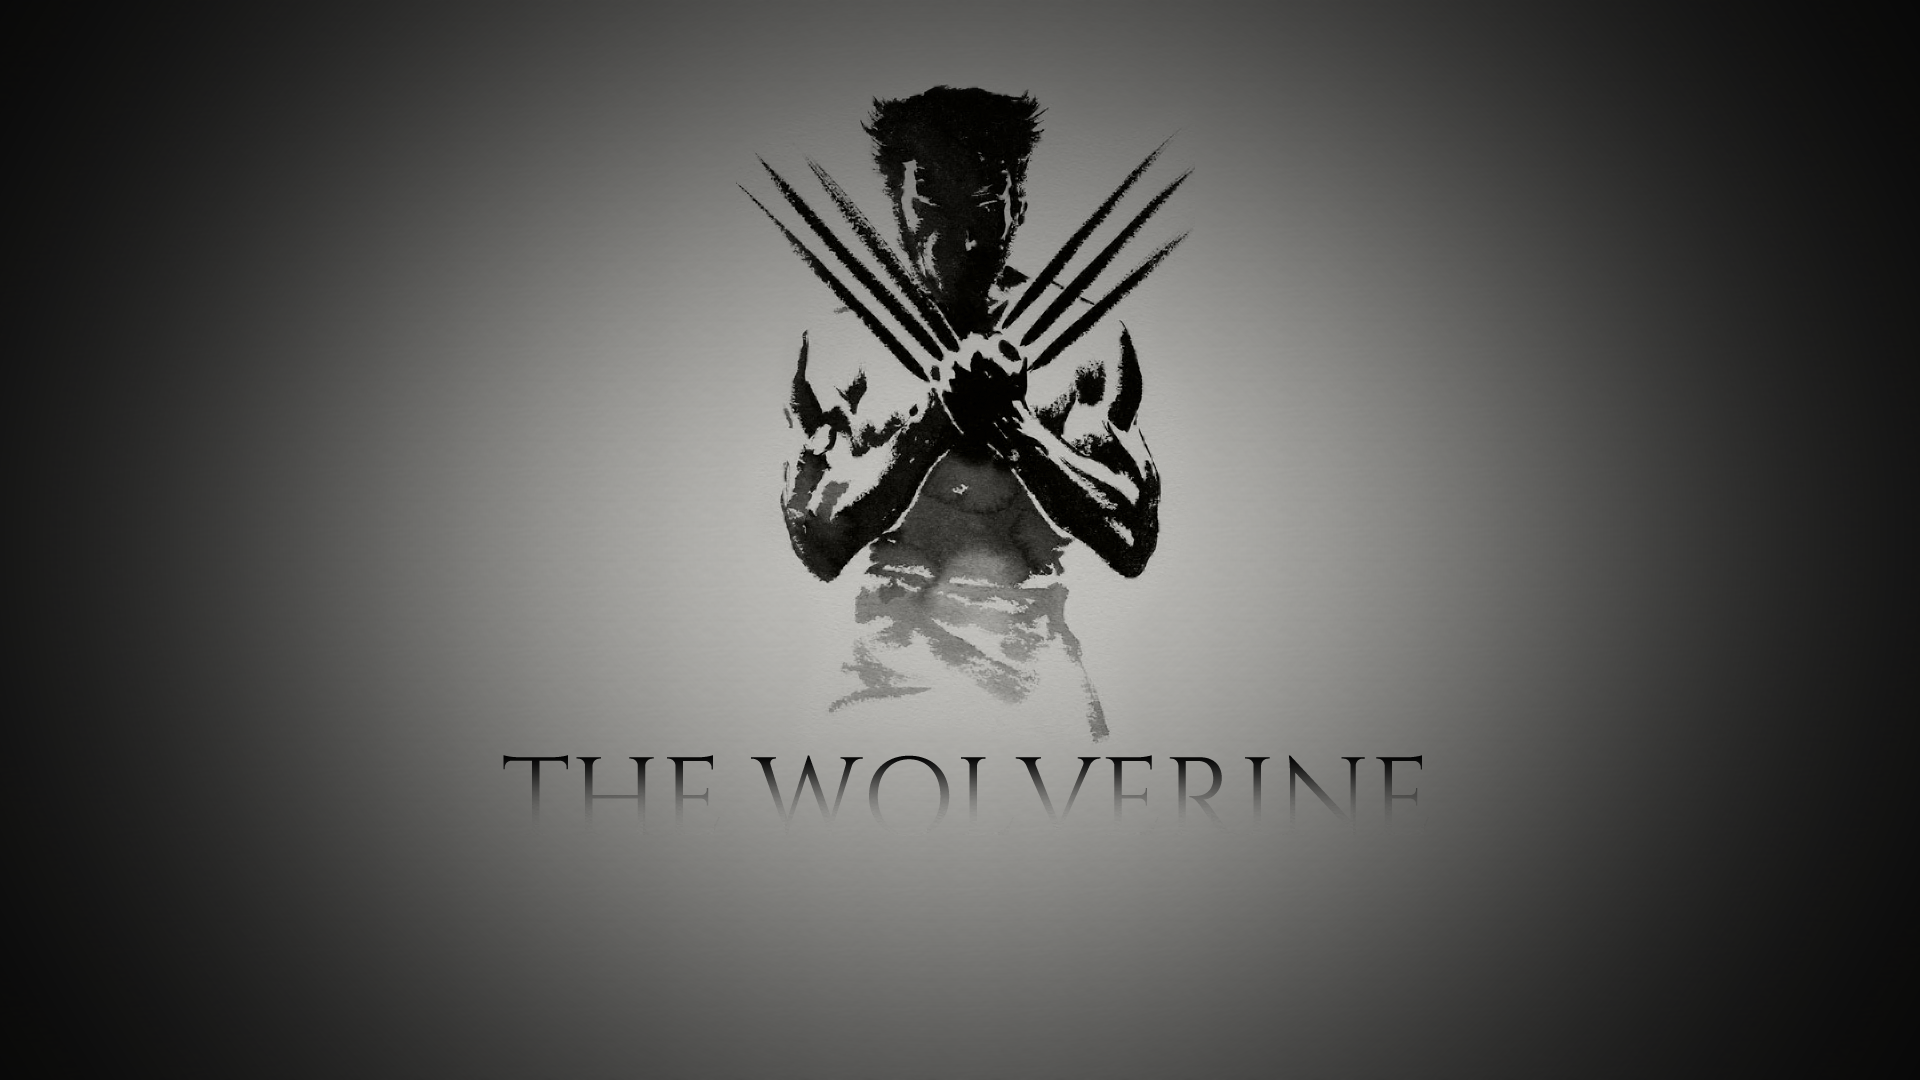 wolverione hd all photos zip file